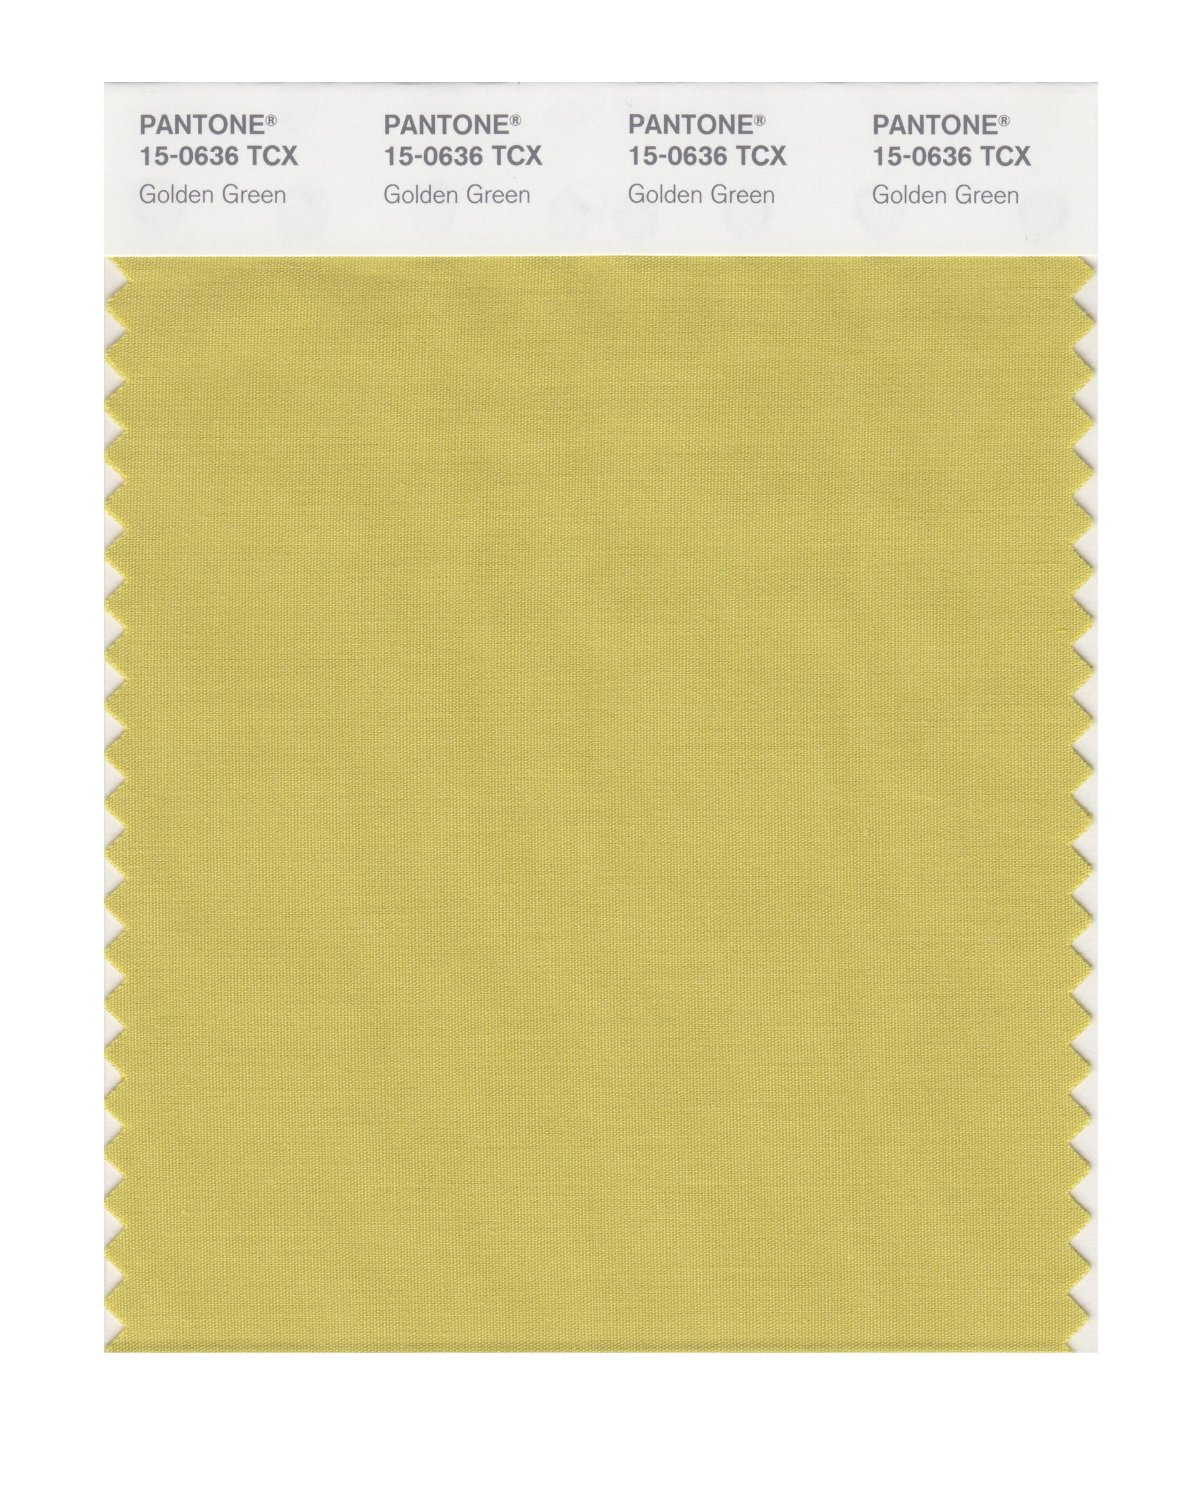 Pantone Smart Swatch 15-0636 Golden Green